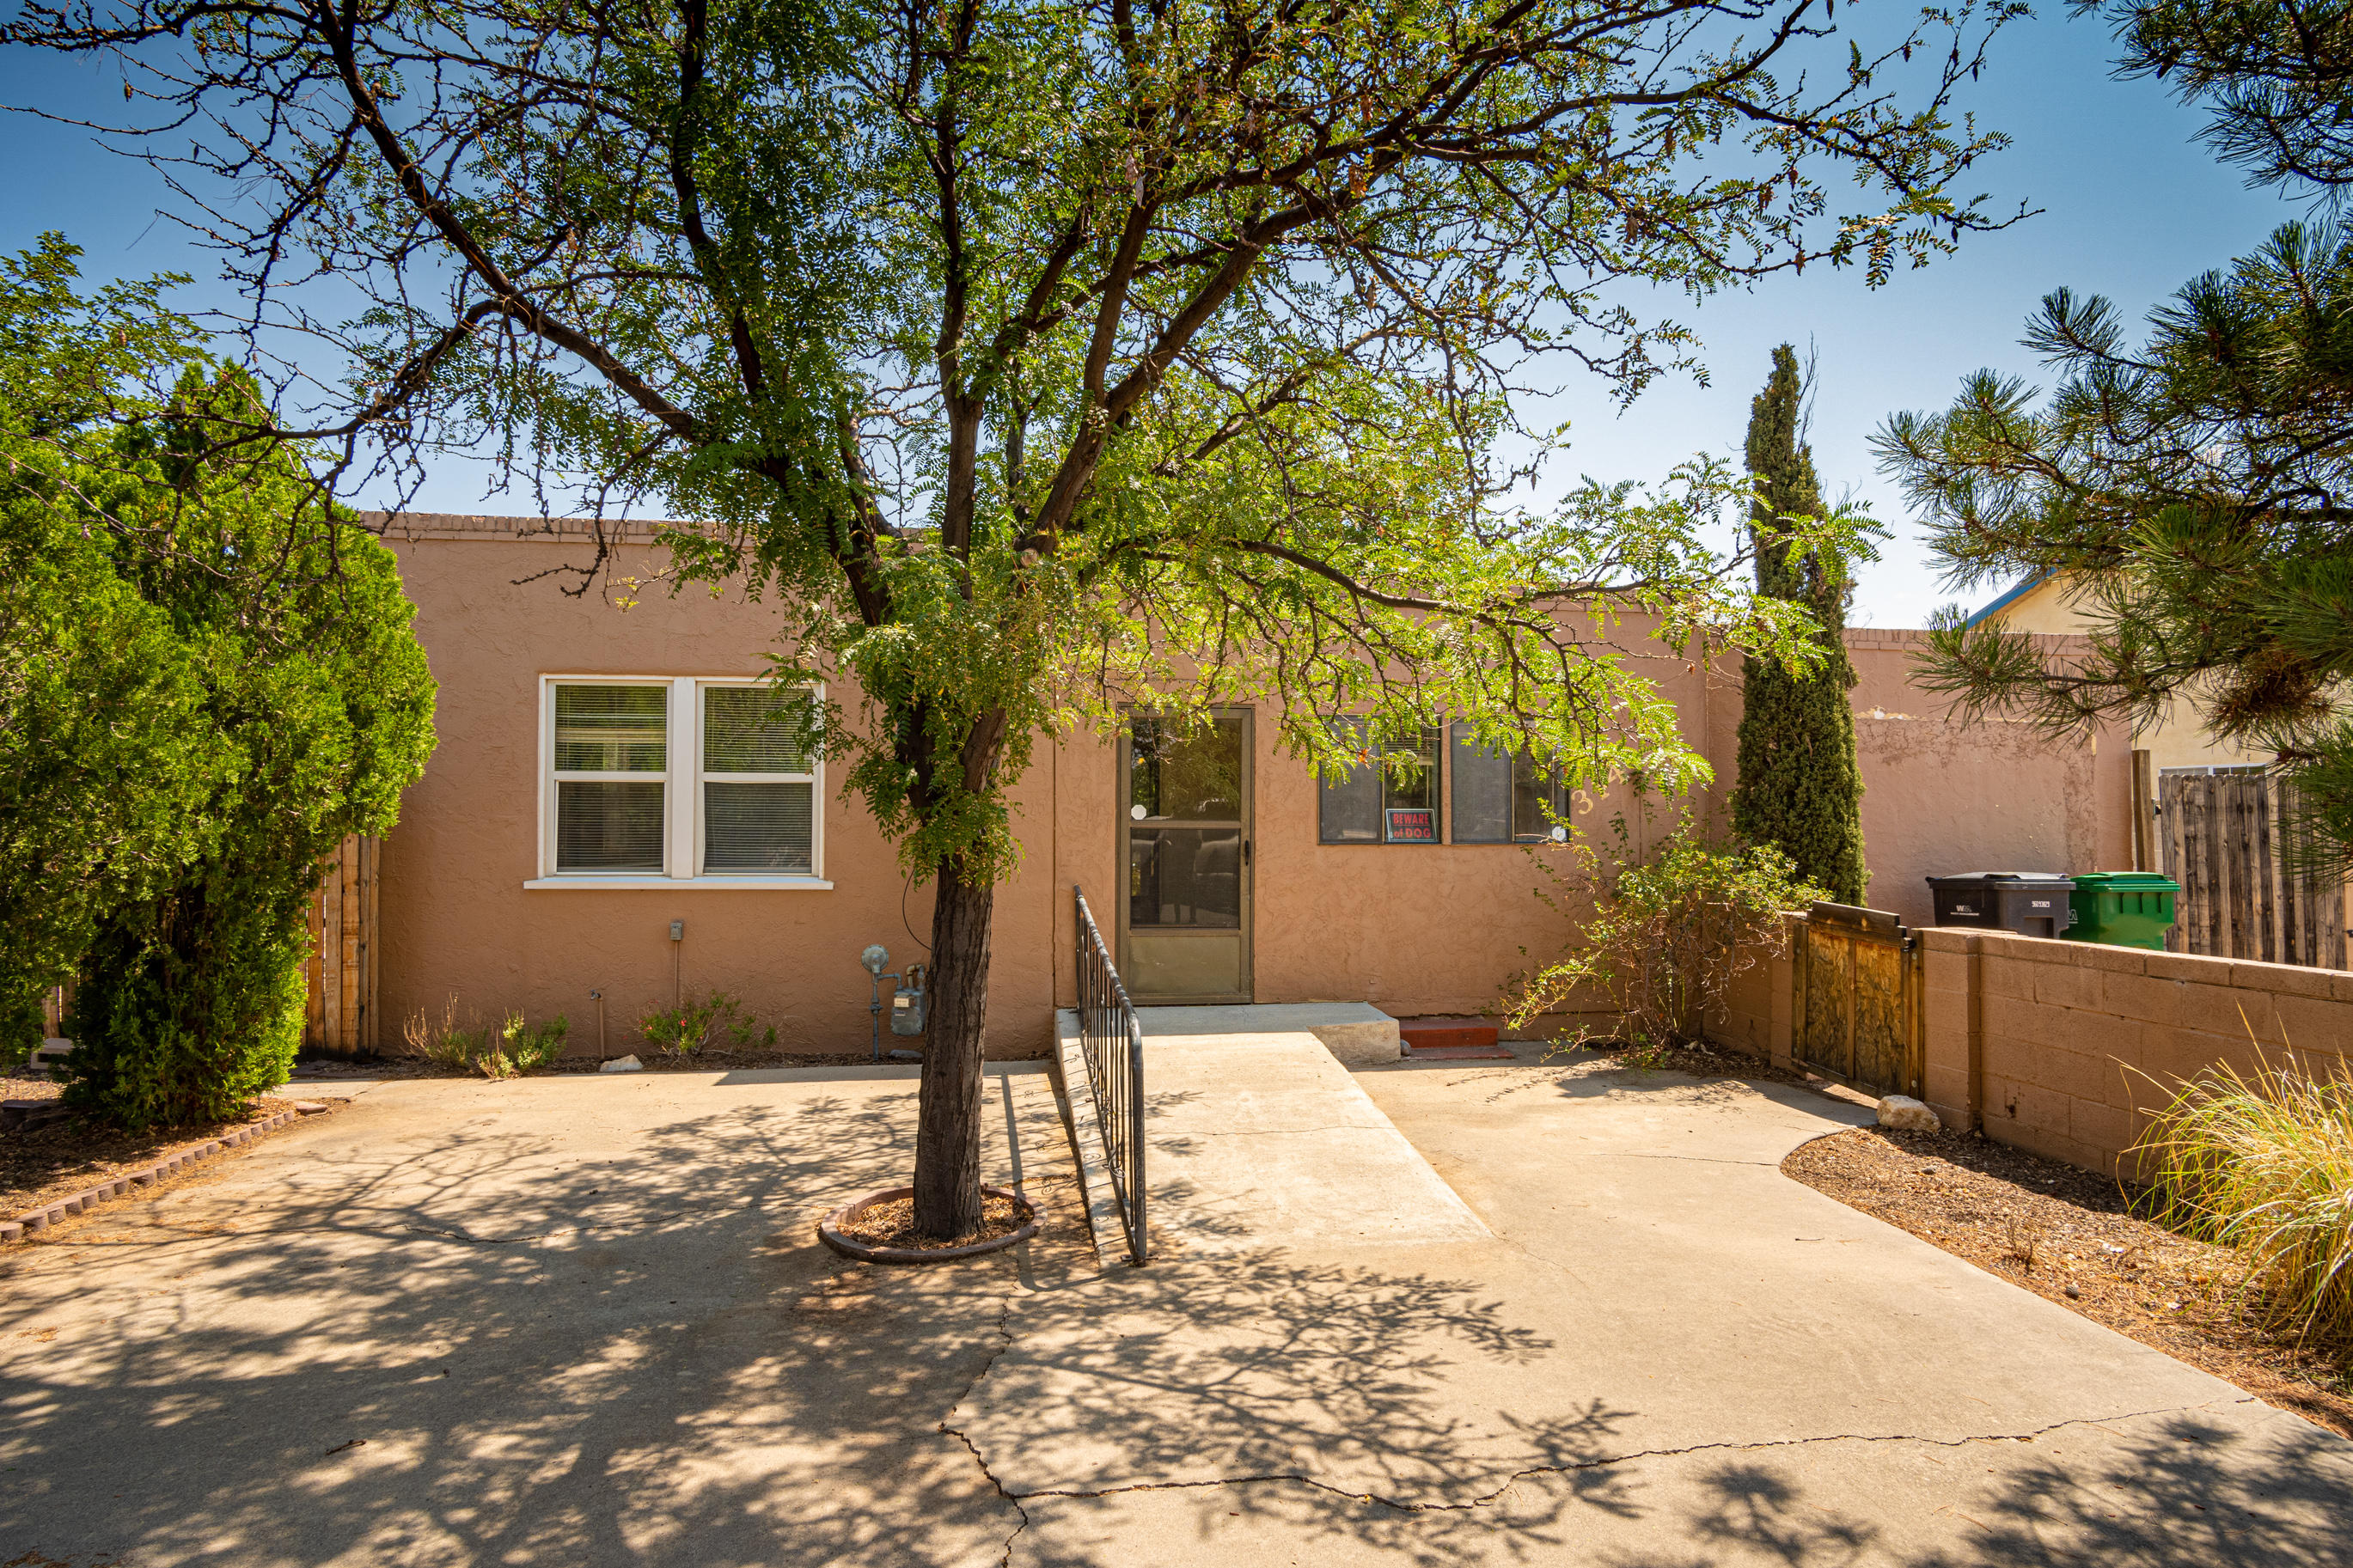 A gorgeous home in the North Valley. This home features 3 bedrooms and 2 full baths. It also has covered patio, backyard access, fenced backyard and oversized storage/wok shop. Conveniently located between 2nd & 4th street with easy access to the Paseo corridor, I-25, restaurants and shopping.Come, visit and take this opportunity for this home to be yours.